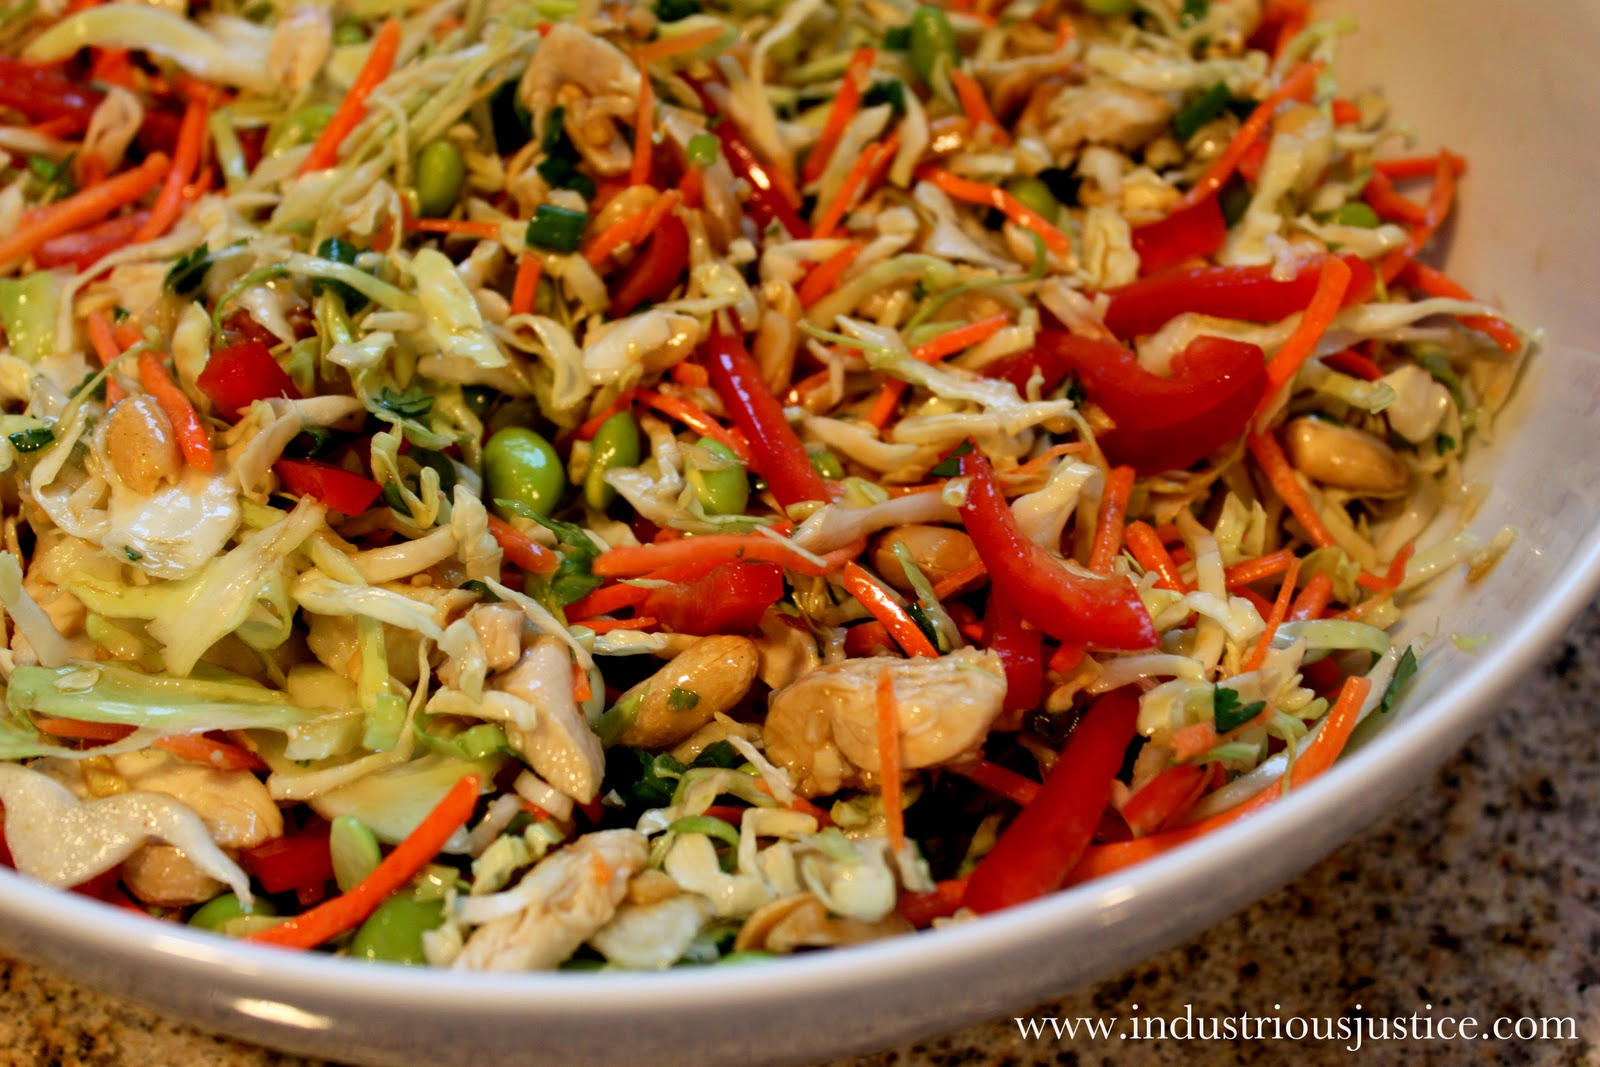 industrious justice: Recipe: Asian Slaw with Ginger Peanut Dressing